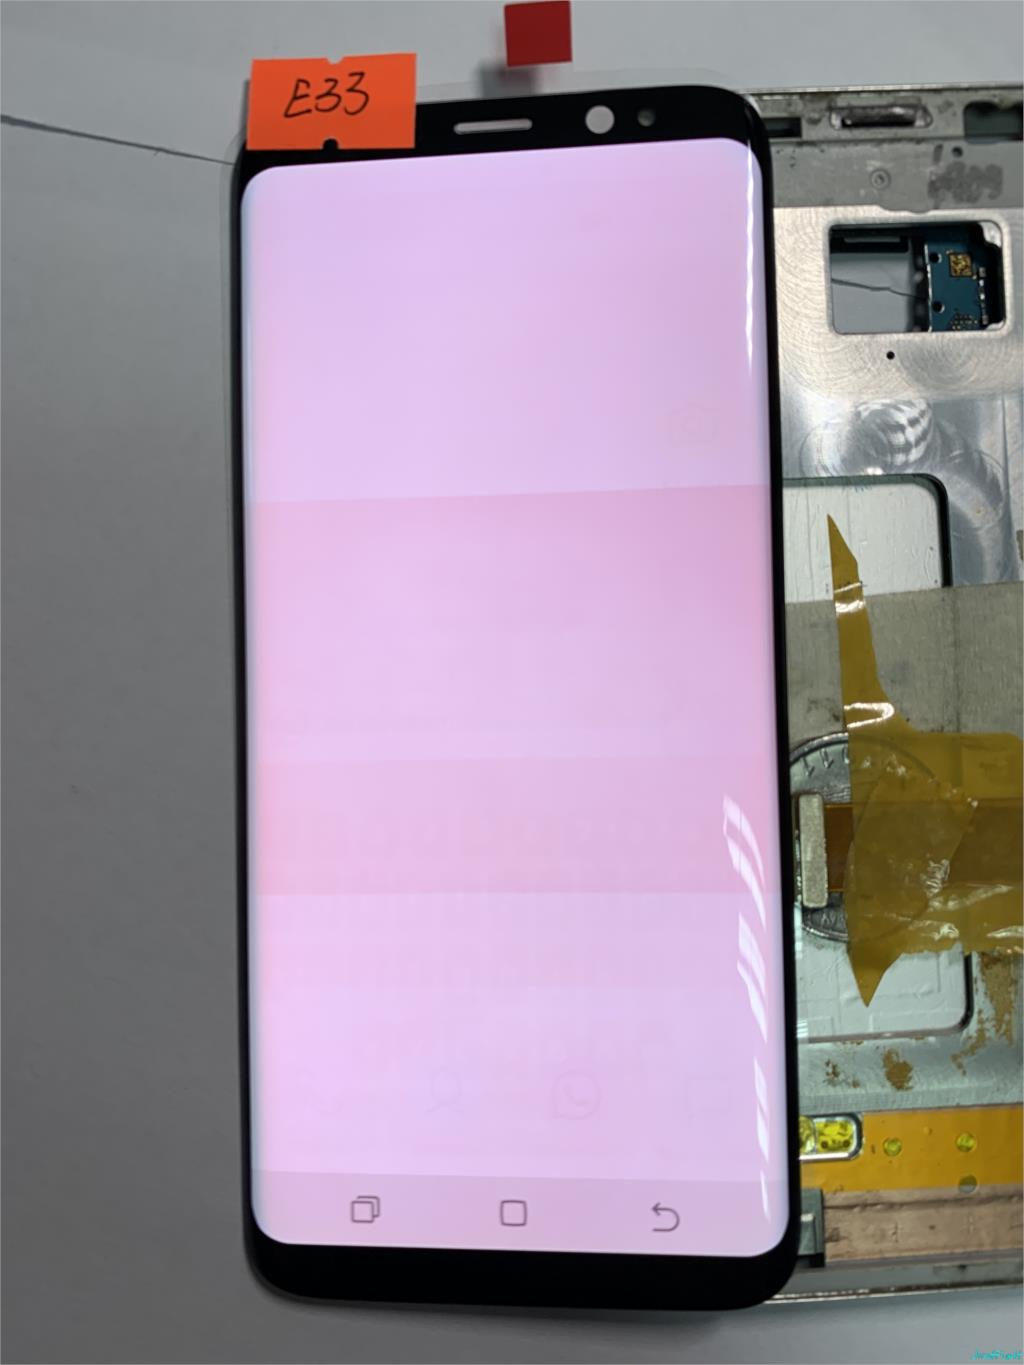 NO E33 for Samsung Galaxy S8 G950F G950A G950FD Burn in shadow lcd display with touch